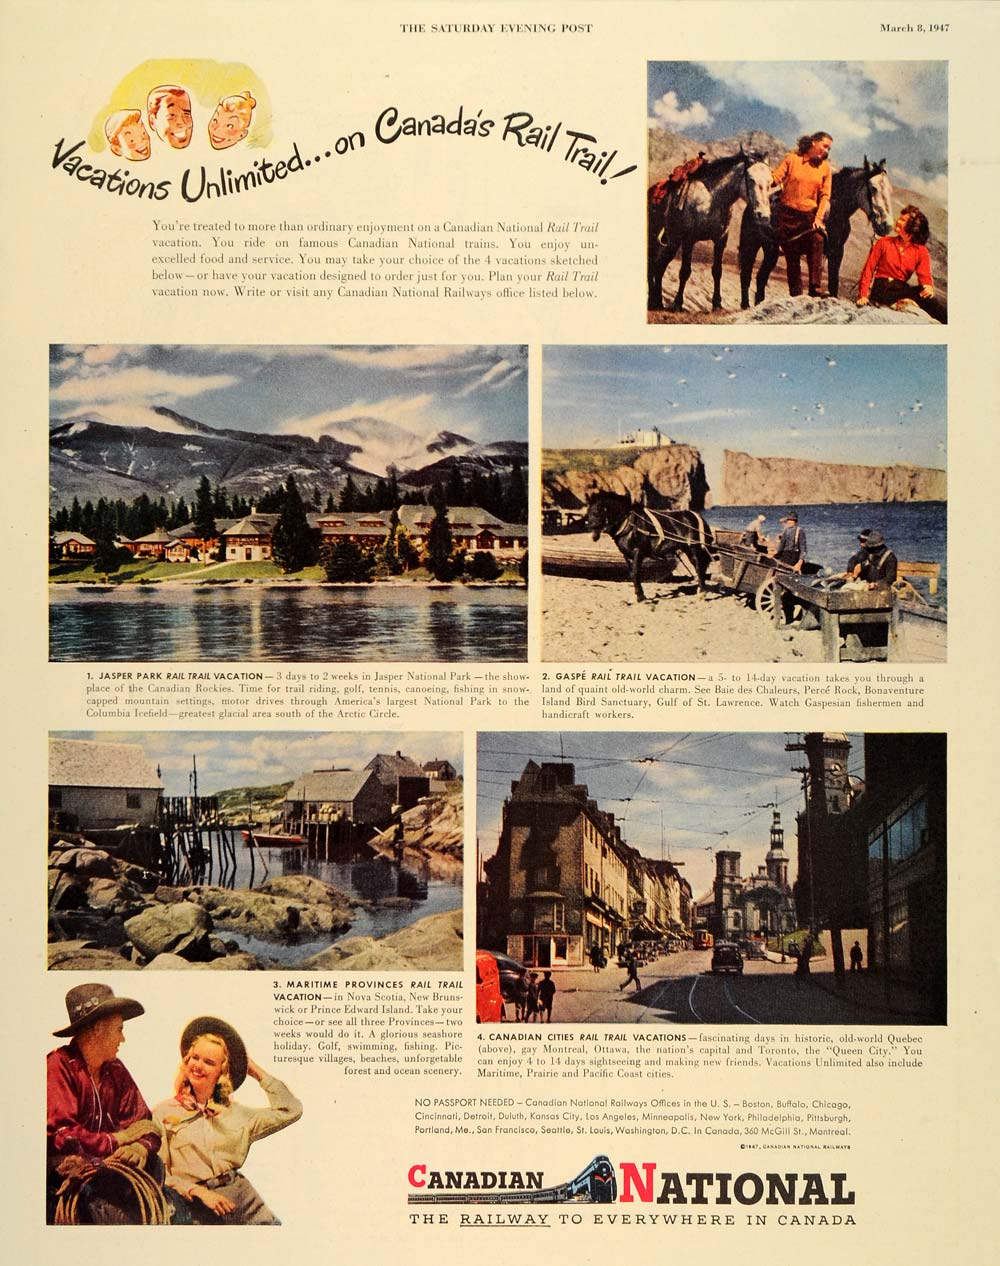 1947 Ad Canadian National Railway Rail Train Vacations - ORIGINAL SEP3